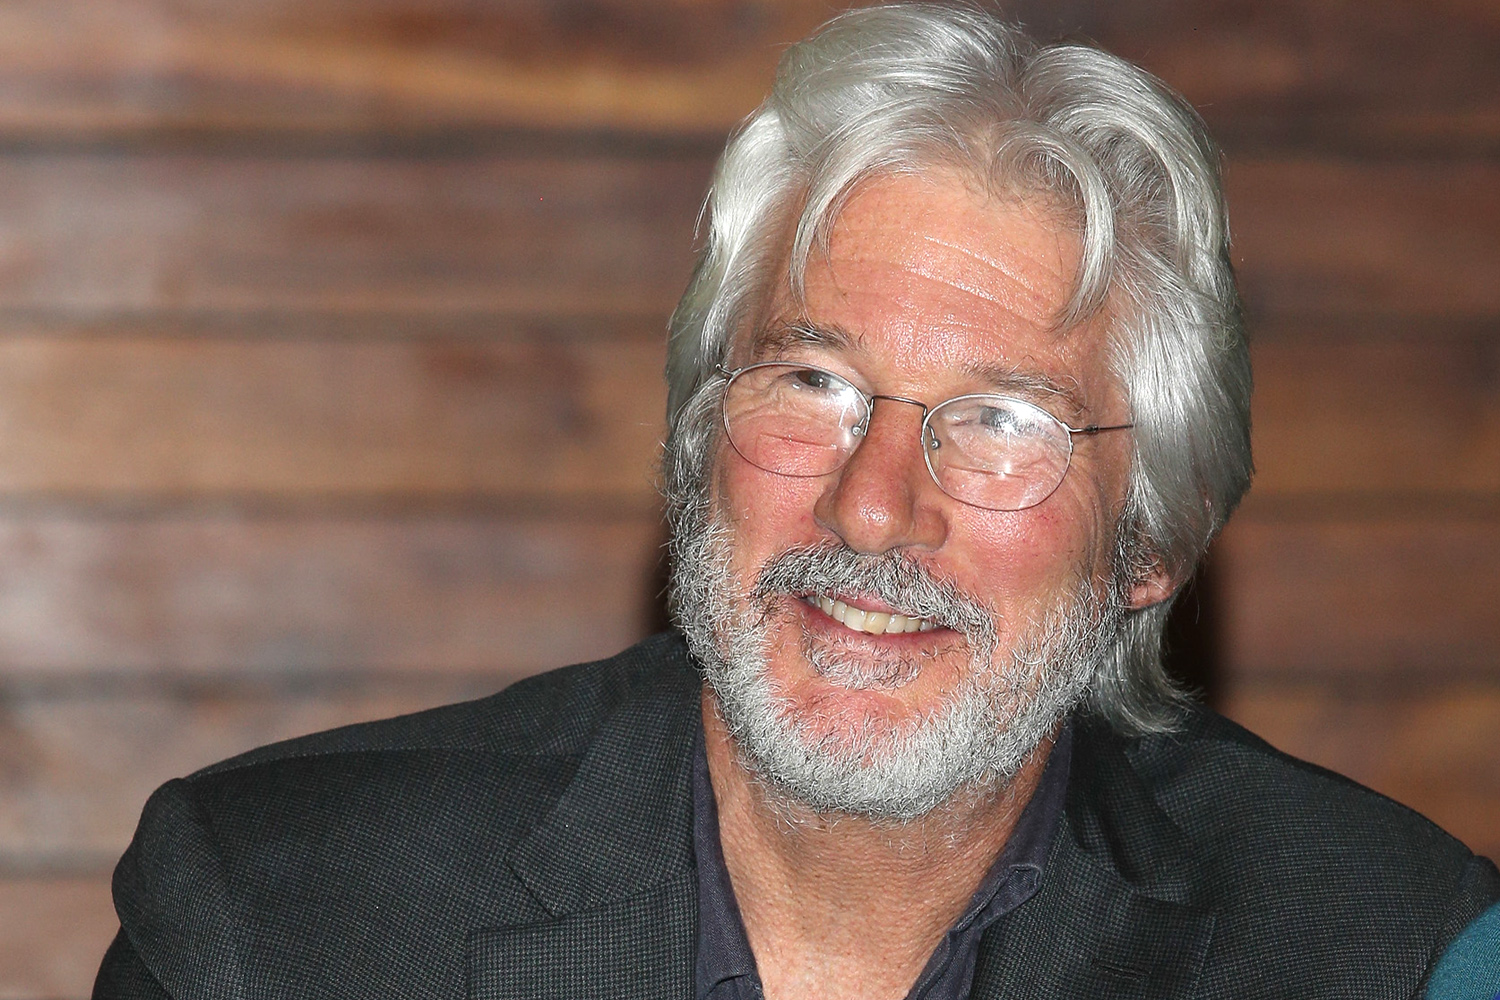 richard gere looking old and bearded.jpg